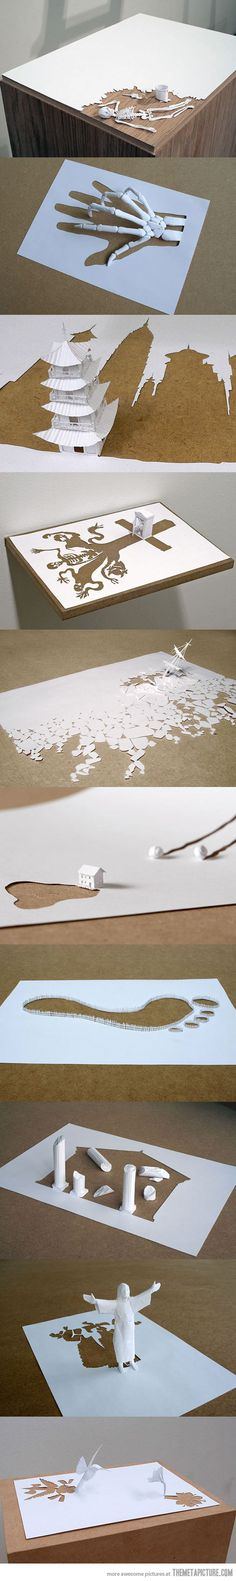 Amazing paper art by Peter Callesen…